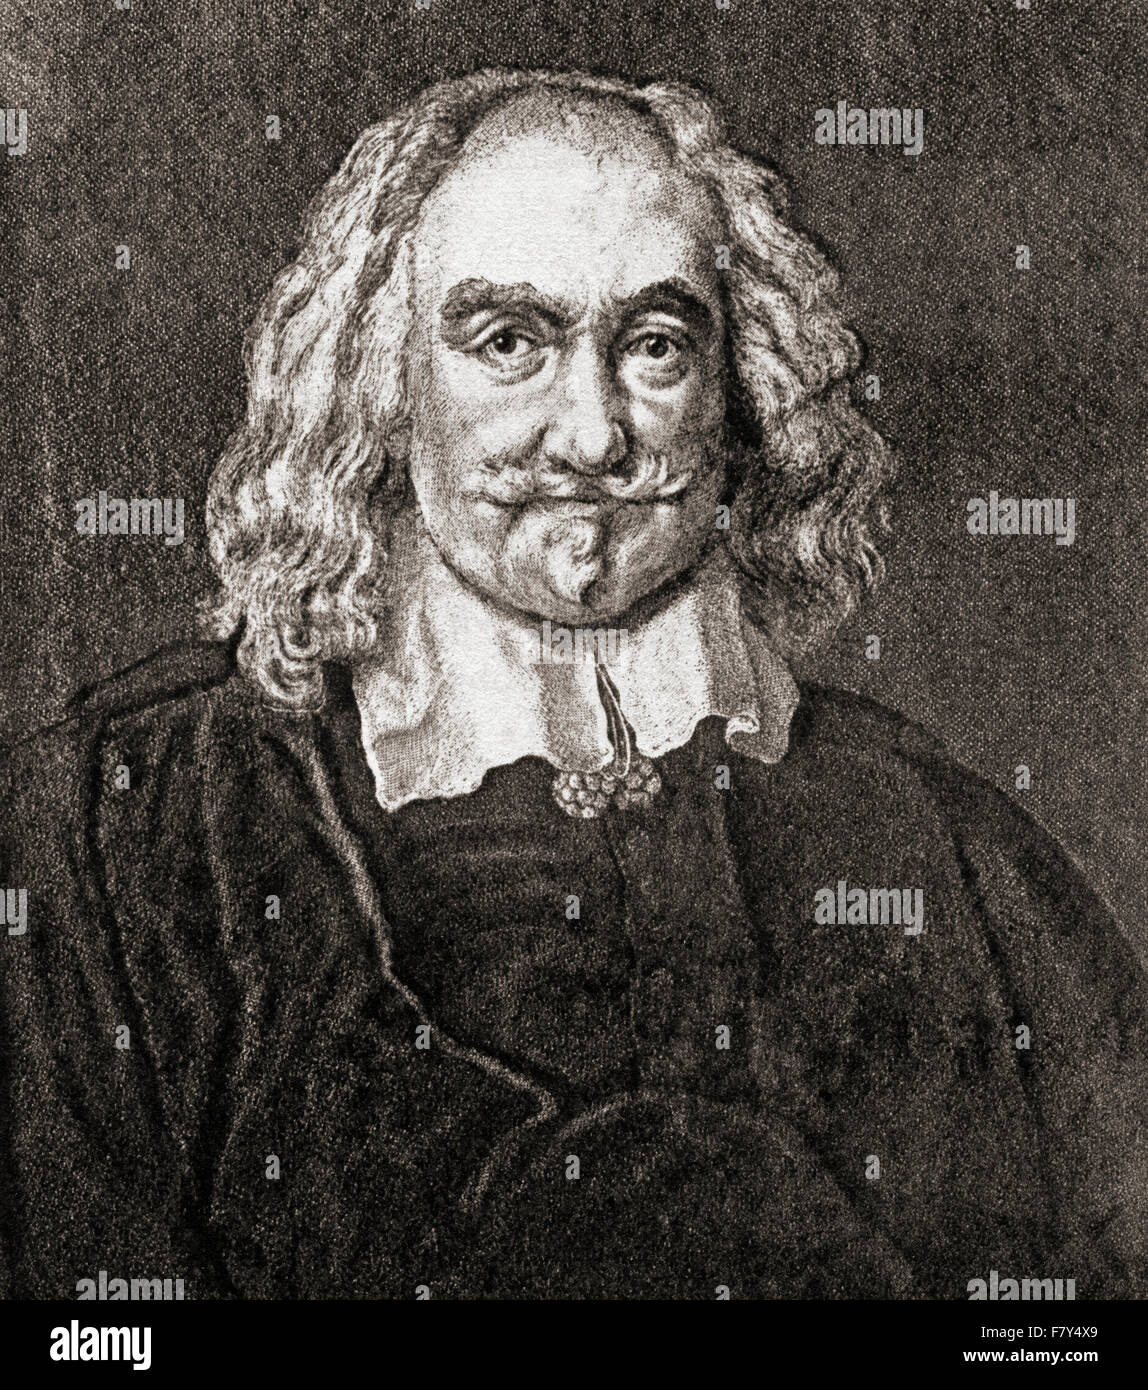 essay on thomas hobbes leviathan This is the summary of chapters ten to sixteen of the landmark work of thomas hobbes, leviathan an analytical summary of thomas hobbes leviathan philosophy essay.